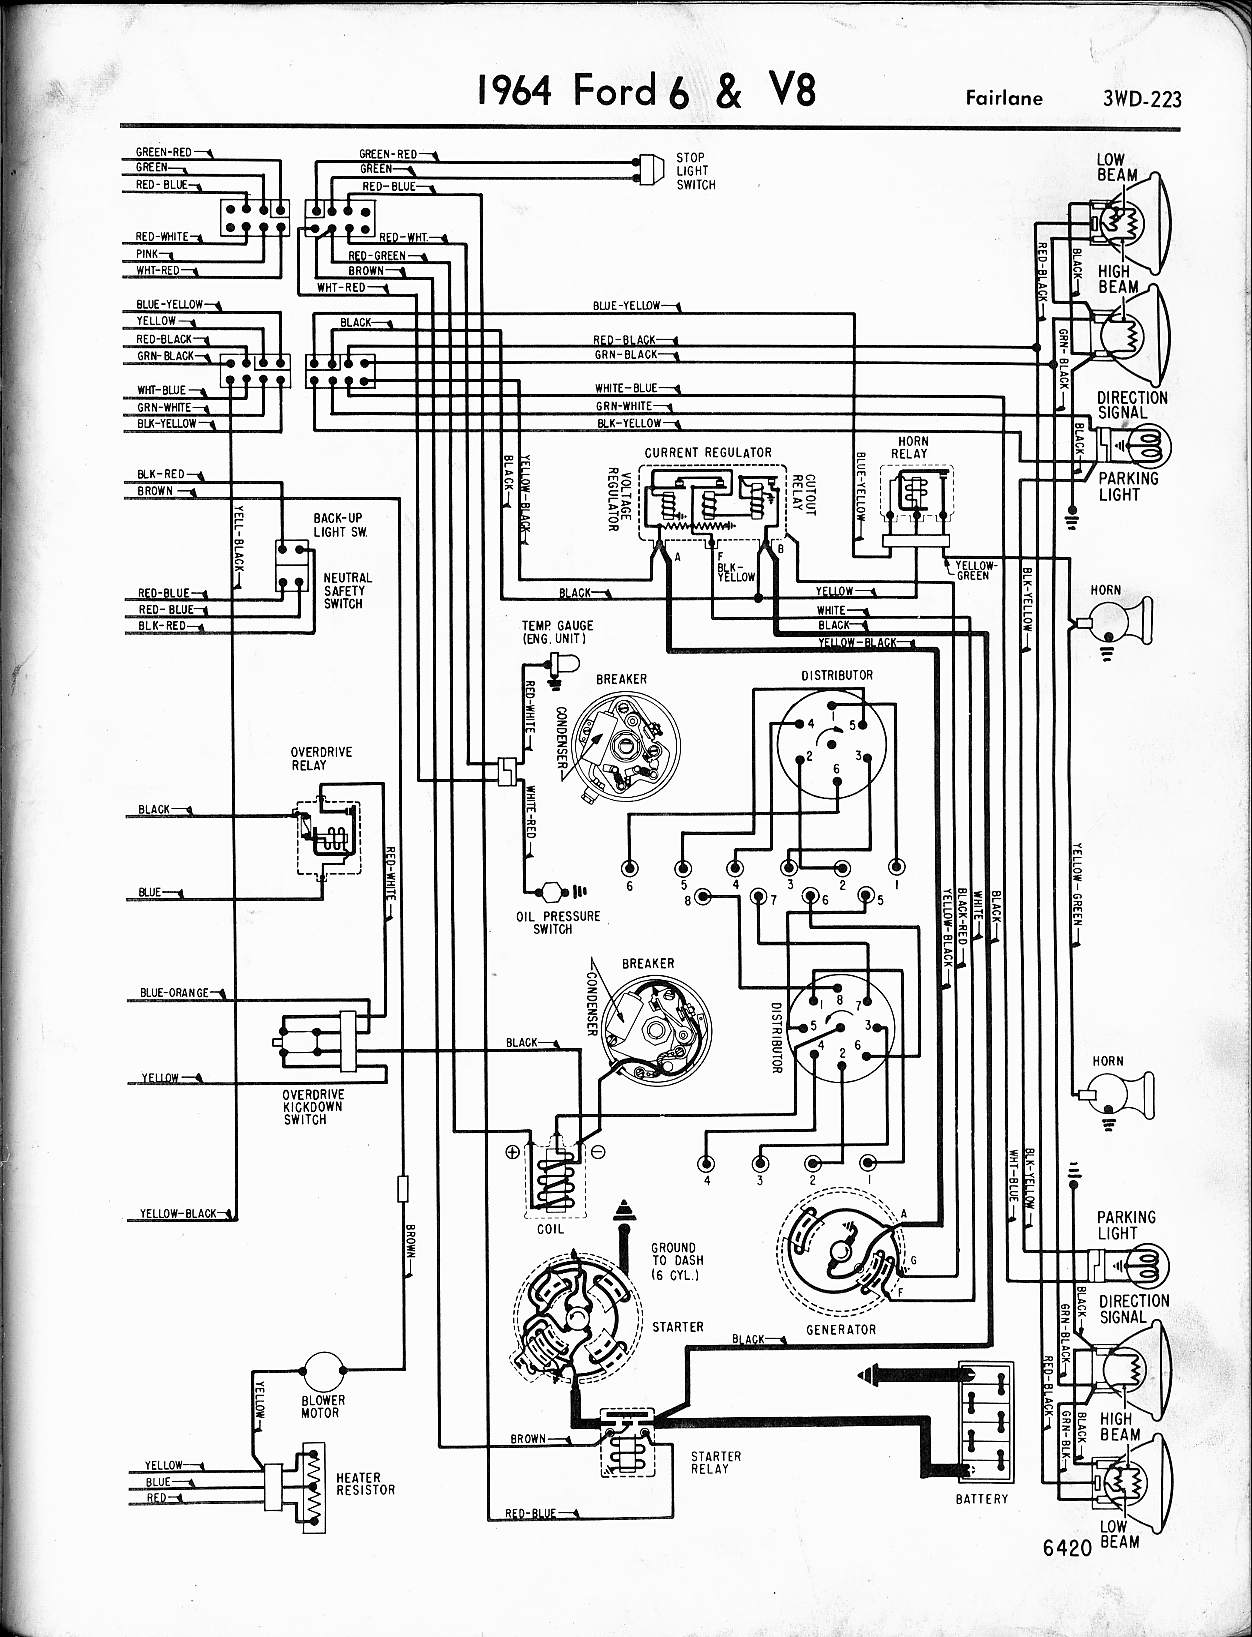 MWire5765 223 57 65 ford wiring diagrams 1965 ford truck wiring diagram at nearapp.co